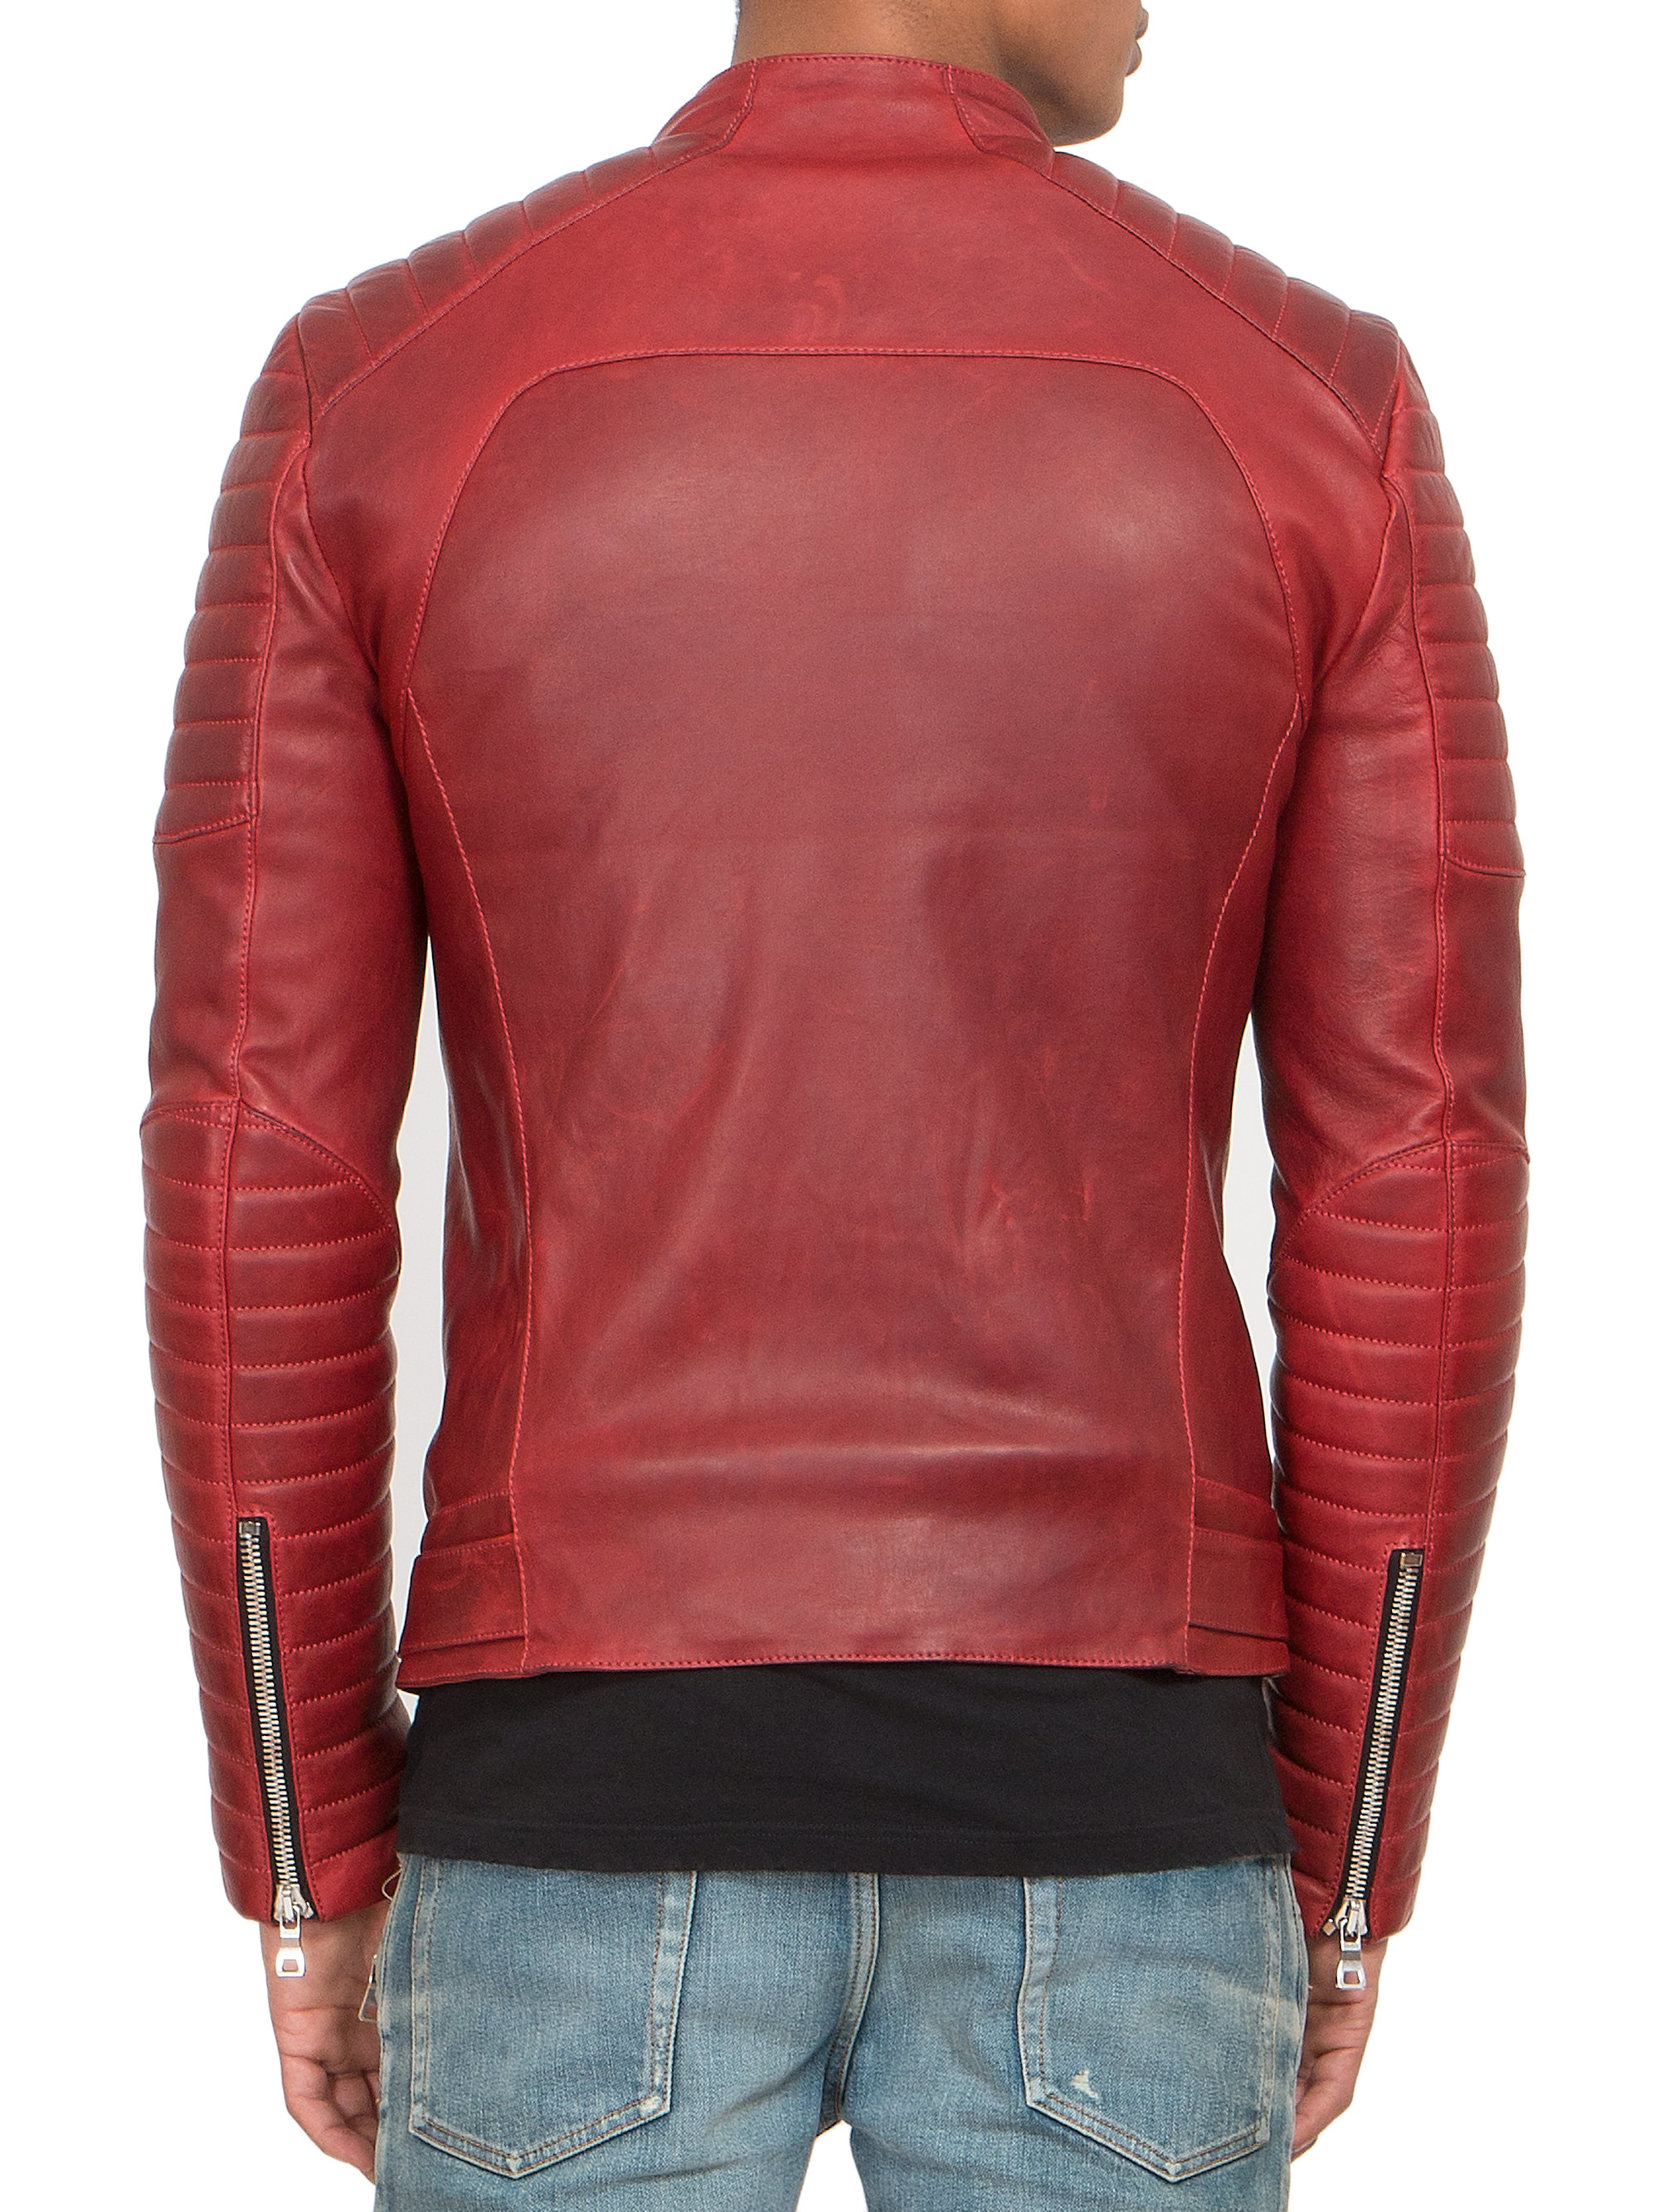 Balmain Leather Jacket | Fake Balmain Jeans | Balmain Boots Men